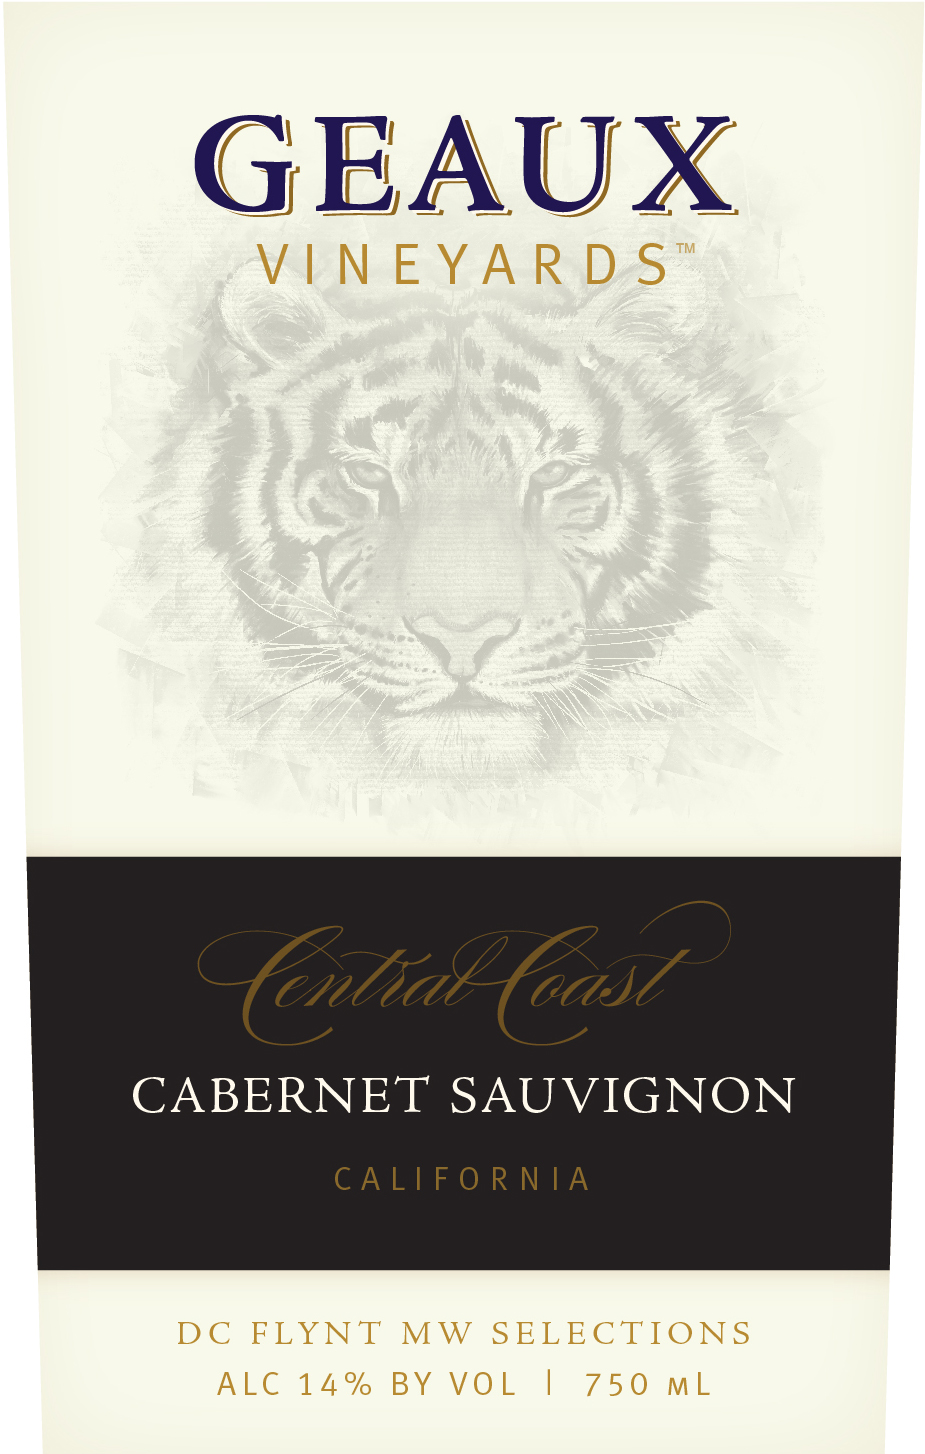 Geaux Vineyards Central Coast AVA Cabernet Sauvignon is impacted from the cool temperatures from San Francisco Bay to the Santa Barbara coast. Steep, exposed hillsides and sun-drenched valley sites maximize the positive effects of warm days and cool nights to create this classic, full bodied, Cabernet Sauvignon with notes of cassis, black cherry, vanilla and spice.